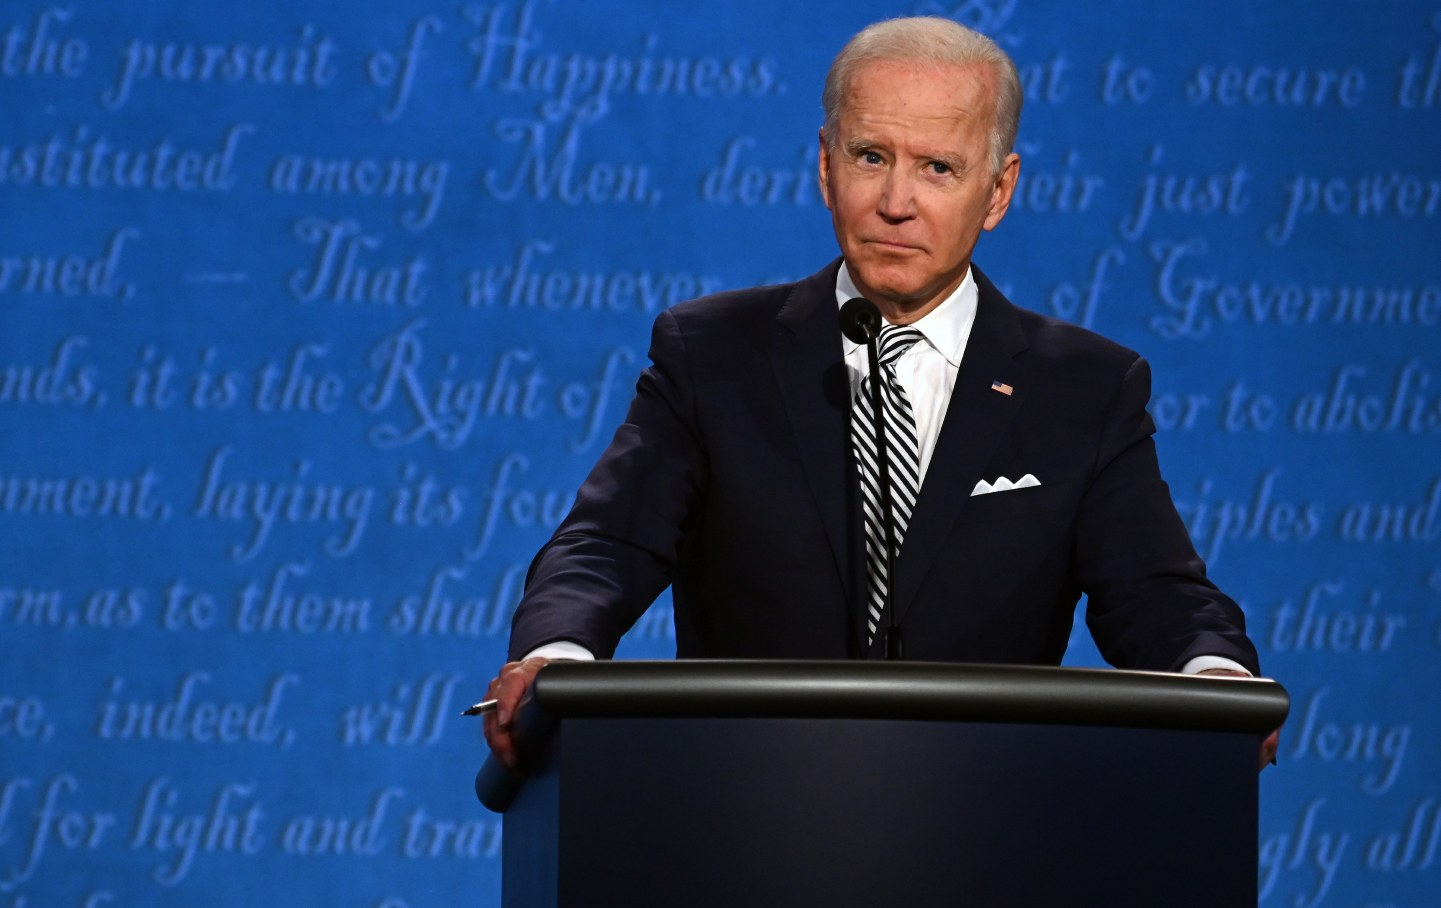 Joe Biden standing before a lectern